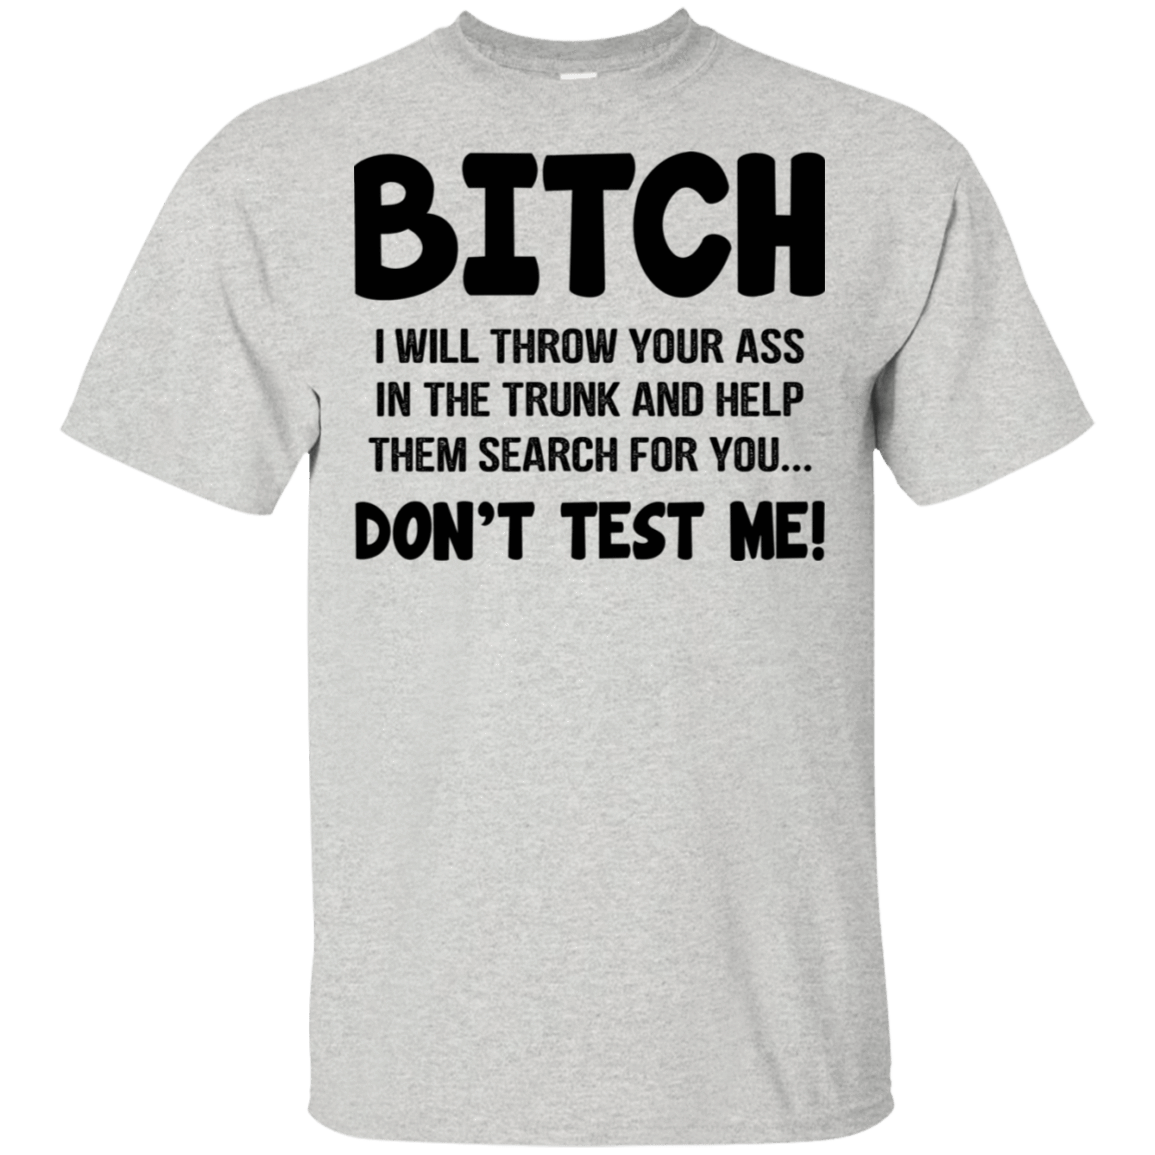 Bitch I Will Throw Your Ass In The Trunk And Help Them Search For You … Don't Test Me T-Shirts, Hoodie, Tank 22-2475-78811045-12568 - Tee Ript